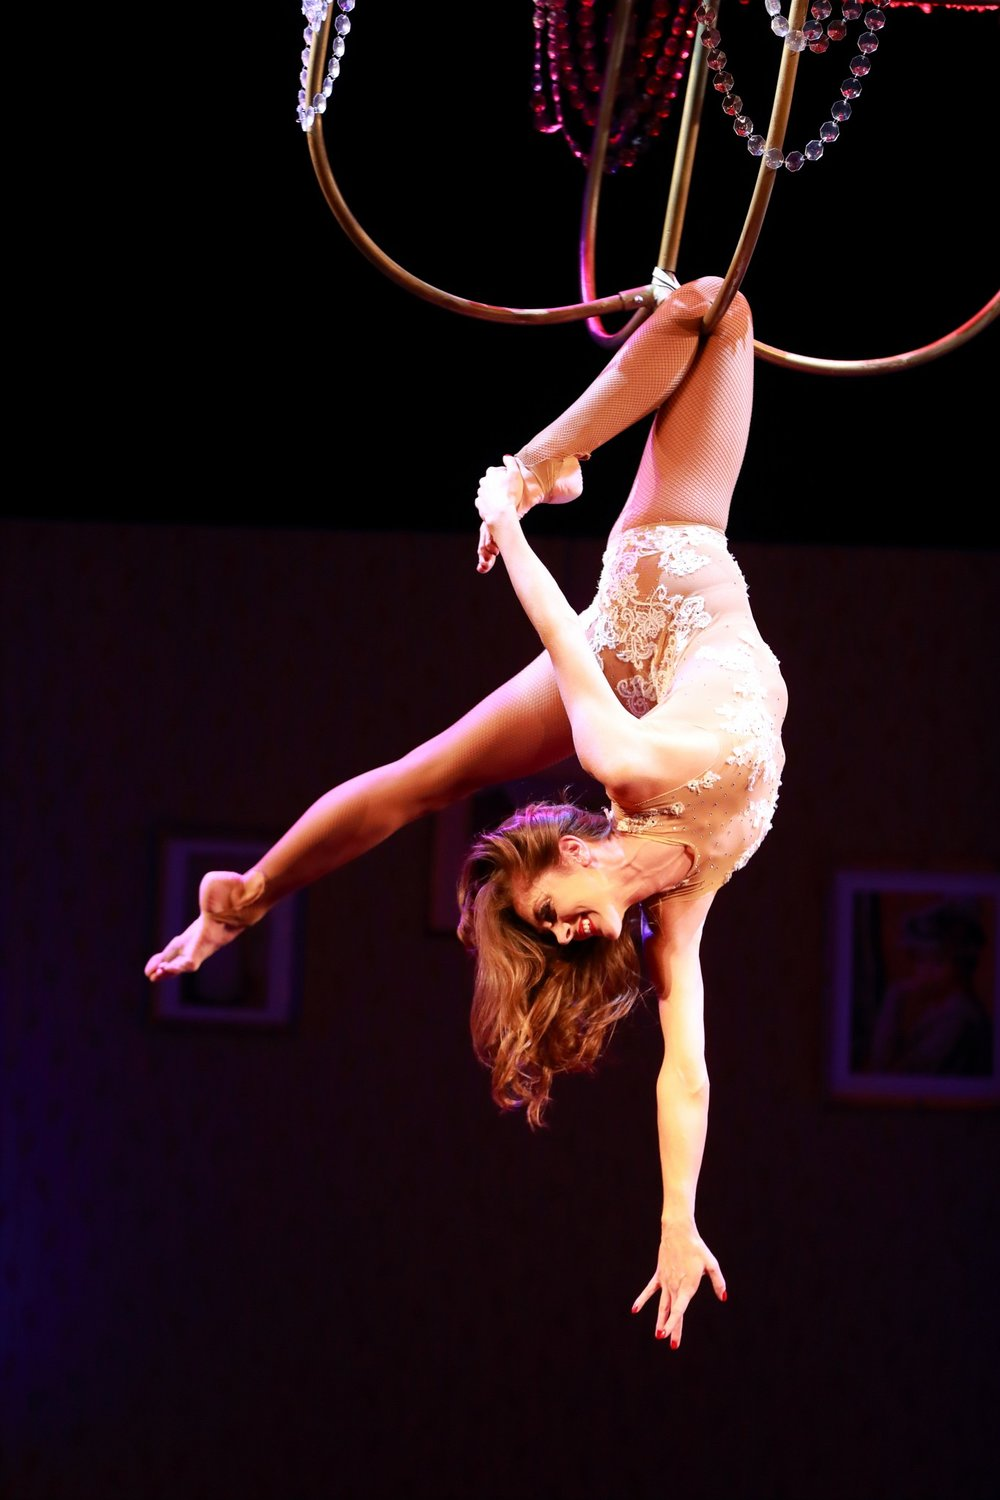 Aerial Chandelier - Flying Chandelier Showact - Luftartistik am Kronleuchter